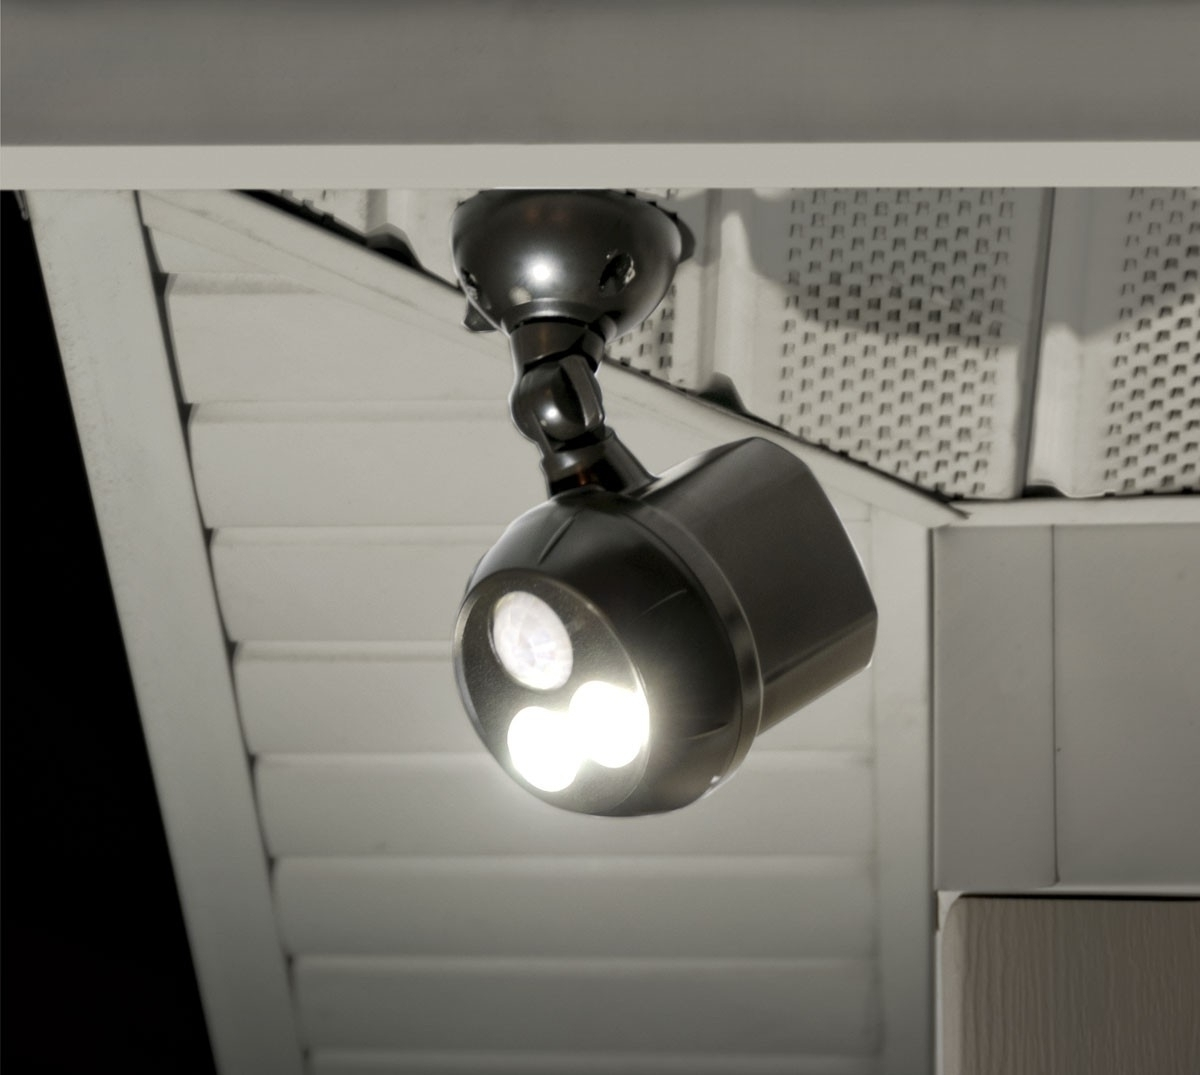 Fashionable Outdoor Ceiling Mount Motion Sensor Light • Outdoor Lighting Regarding Outdoor Motion Sensor Ceiling Mount Lights (View 12 of 20)